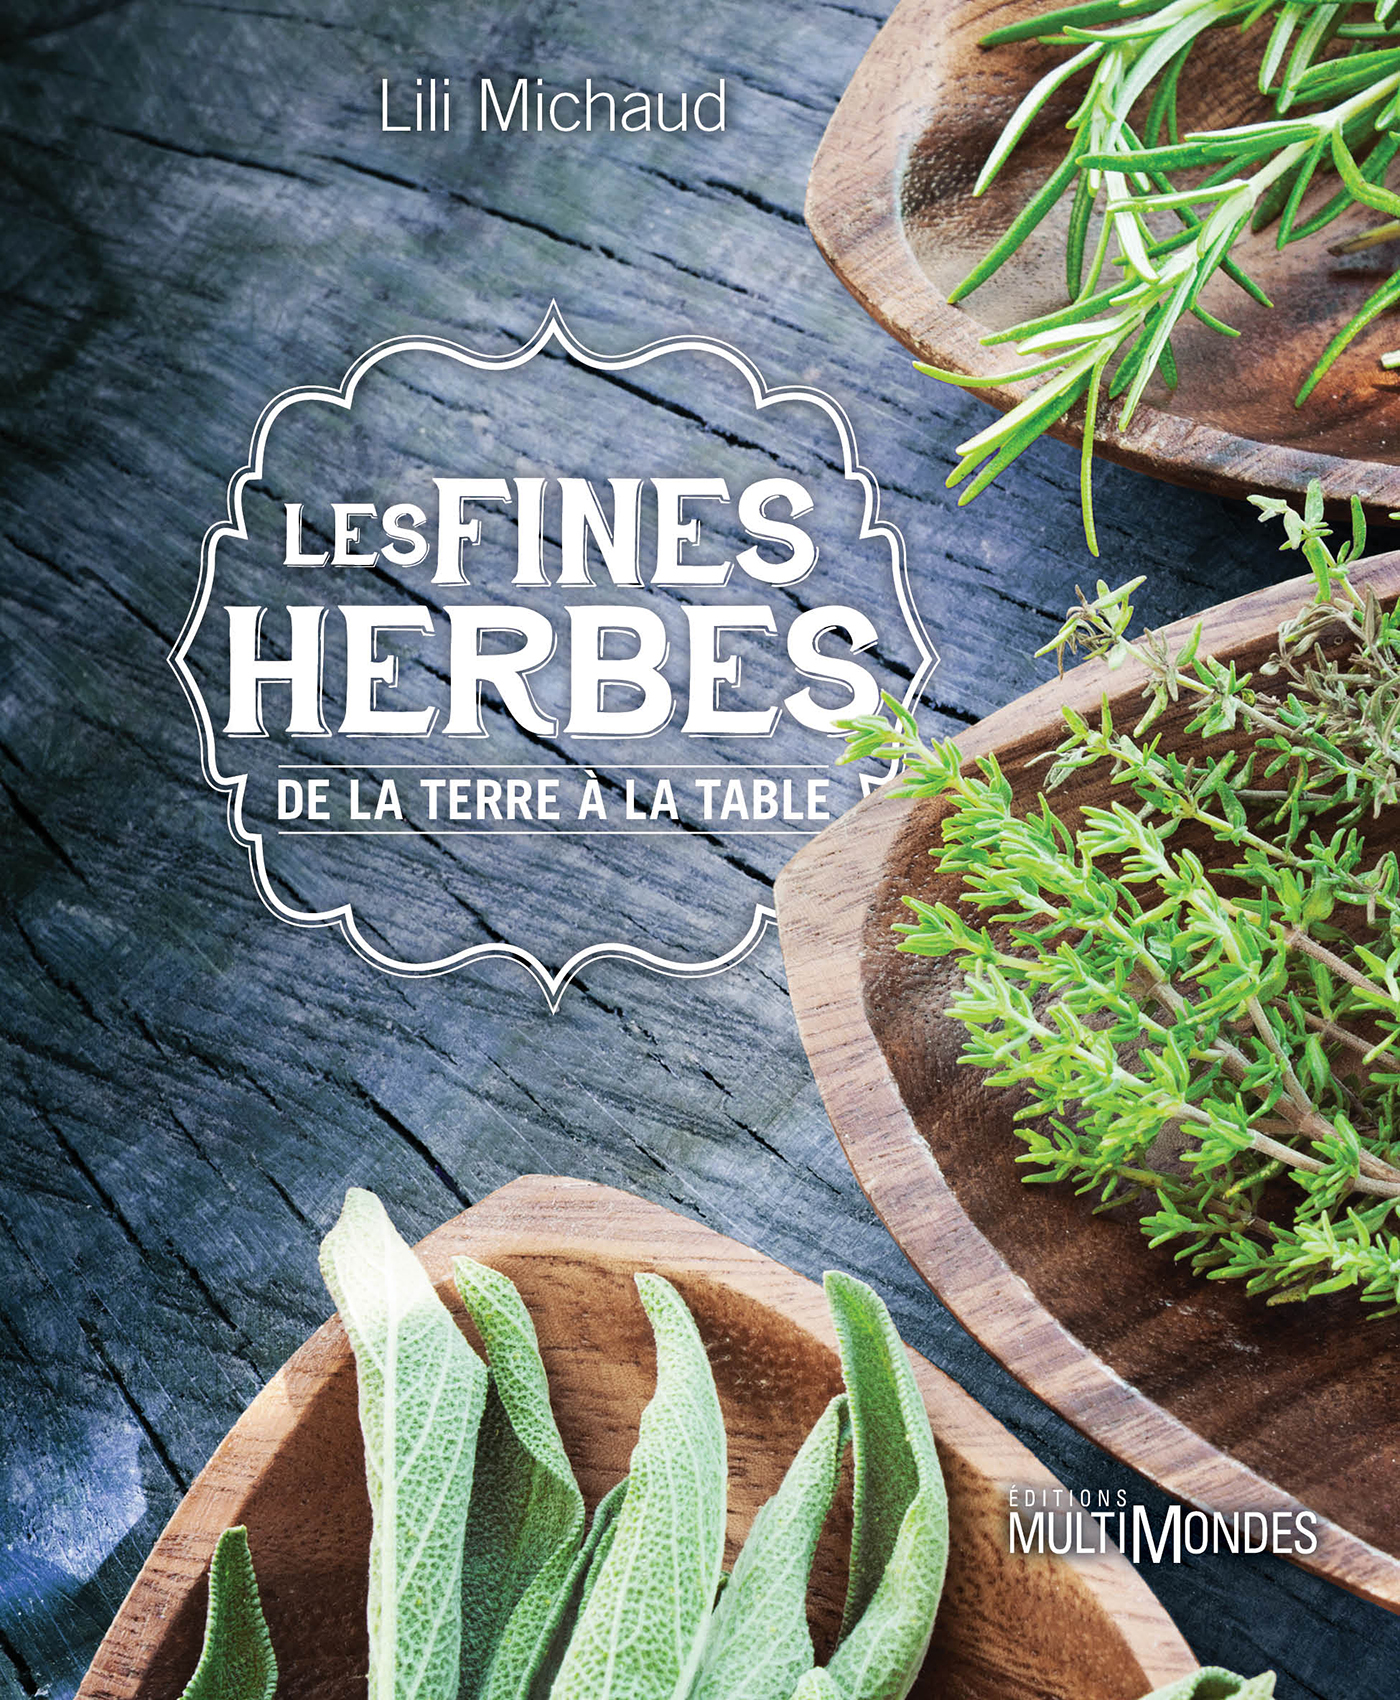 Couverture : Les fines herbes, de la terre à la table Lili Michaud